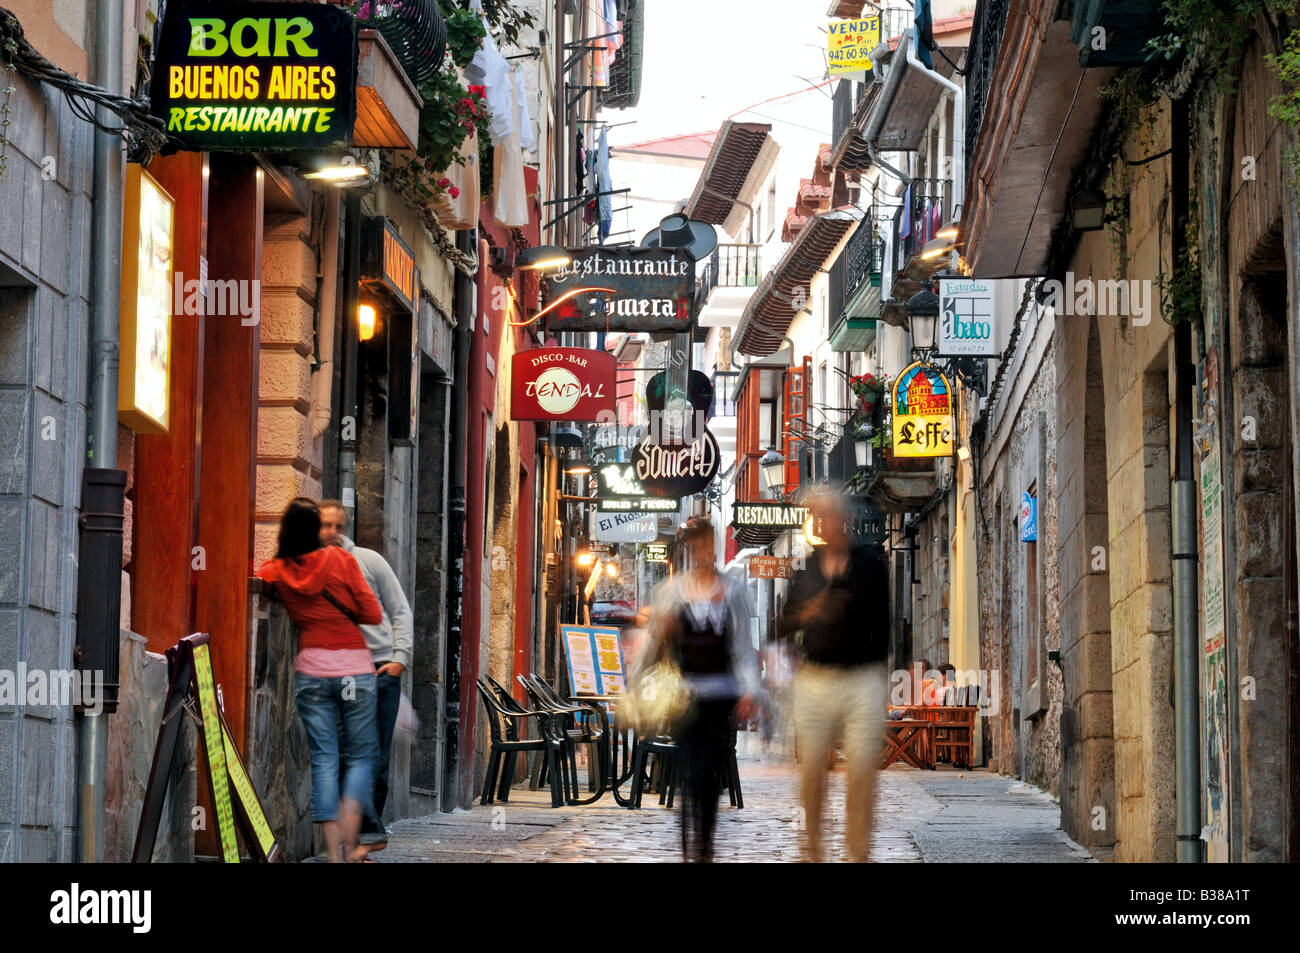 People walking in the Calle Ruamayor in the historic centre of Laredo - Stock Image